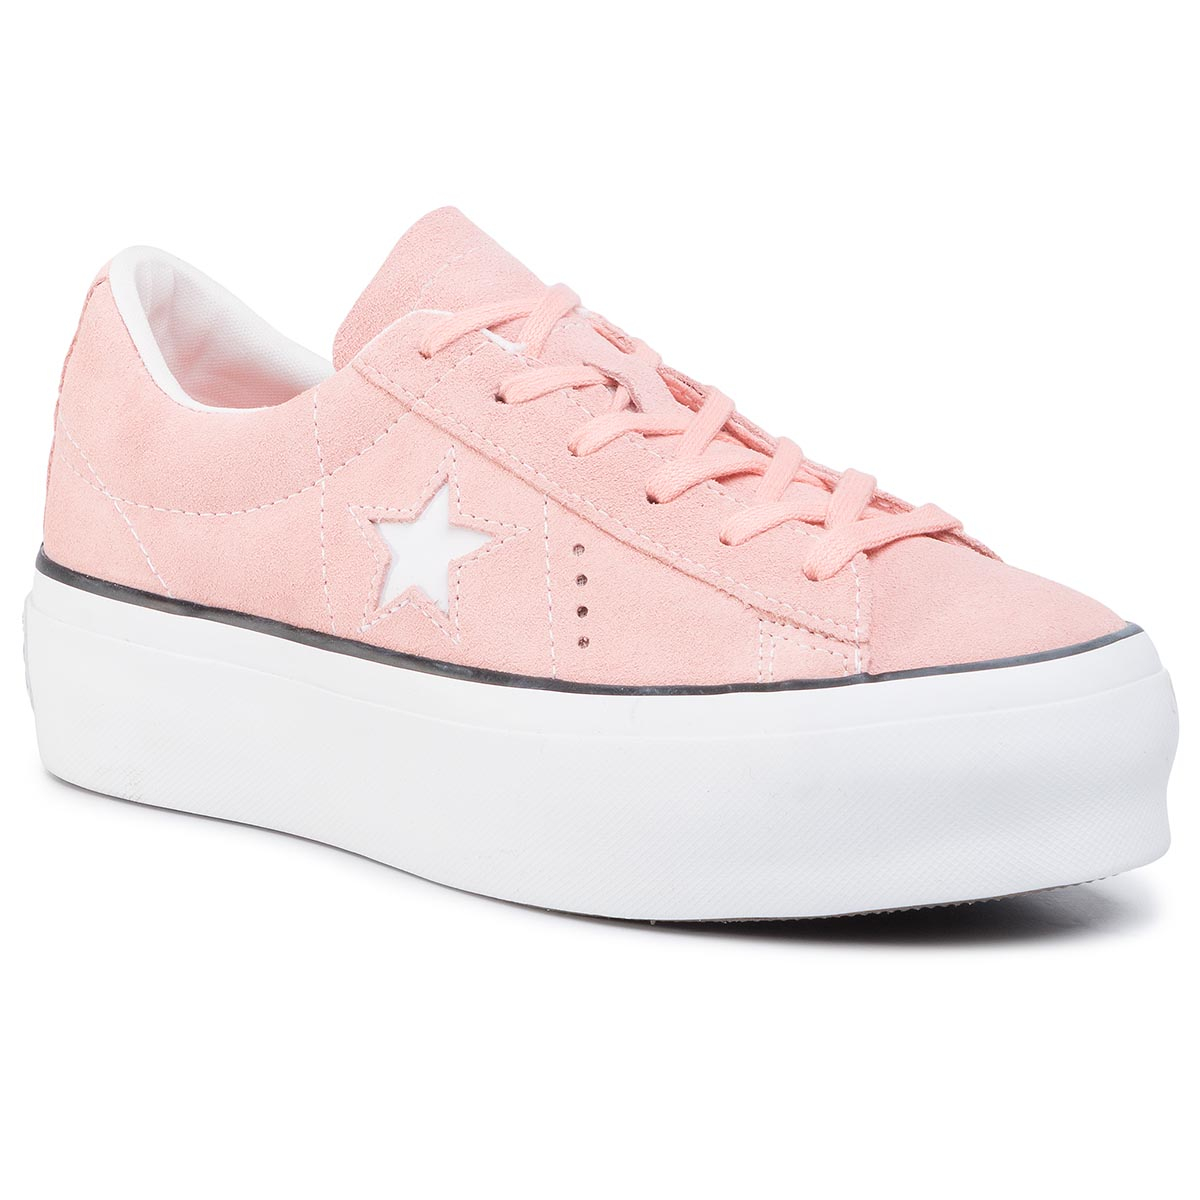 Sneaker Converse Sneakers CONVERSE - One Star Platform Ox Bleached Coral/Black/White